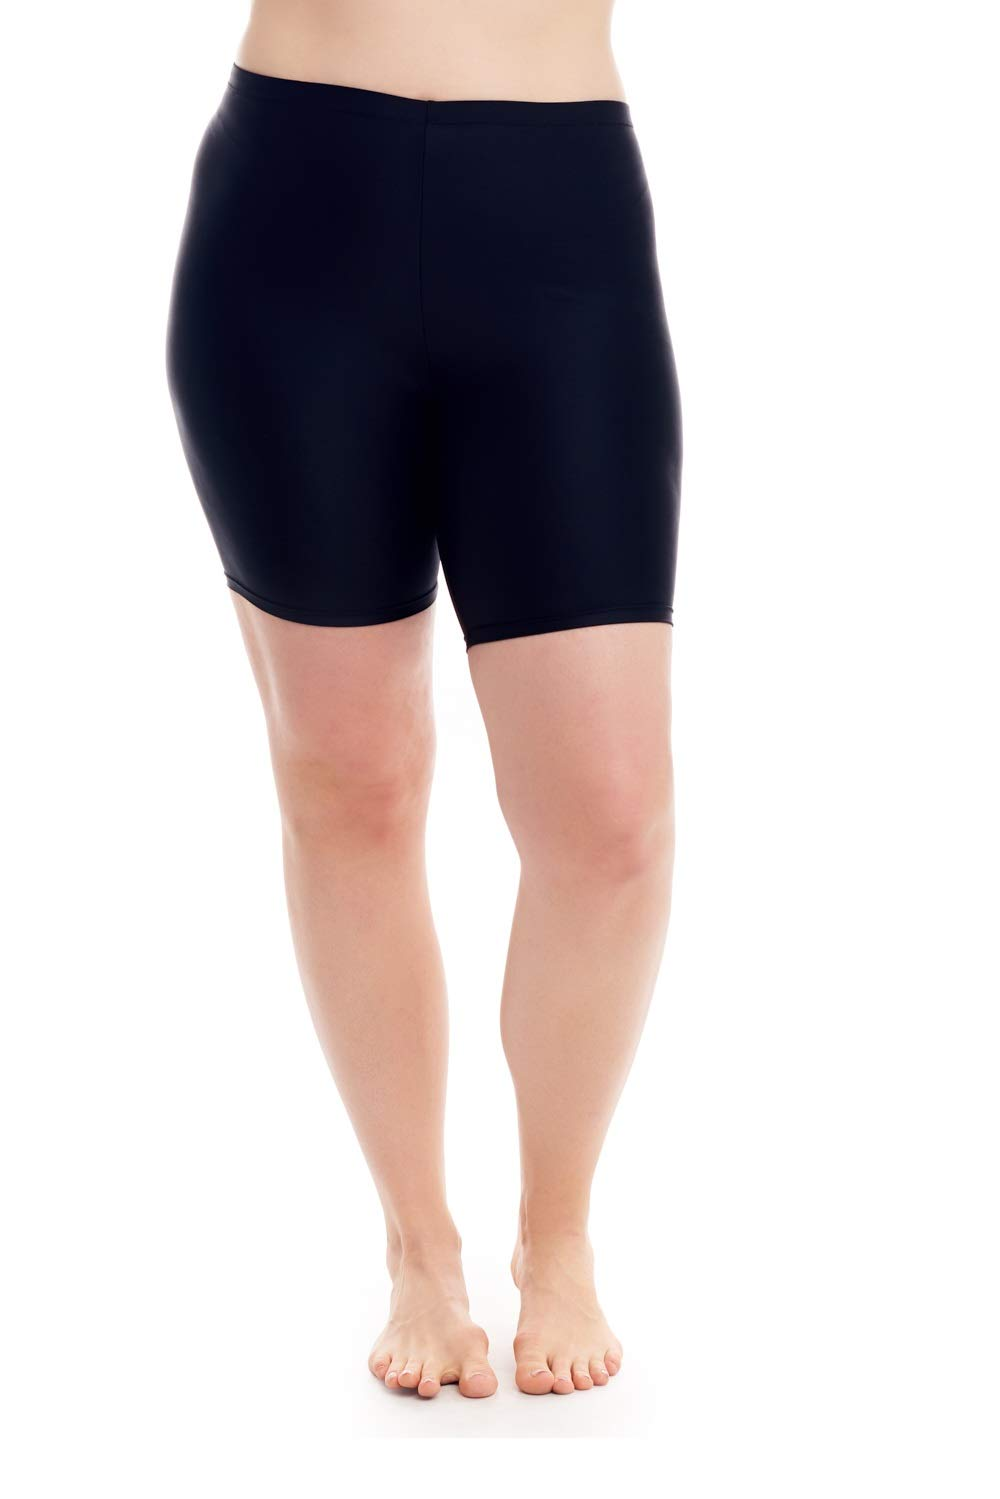 COVER GIRL Womens Swimwear Straight and Curvy Swim Shorts Full Coverage with Tummy Control